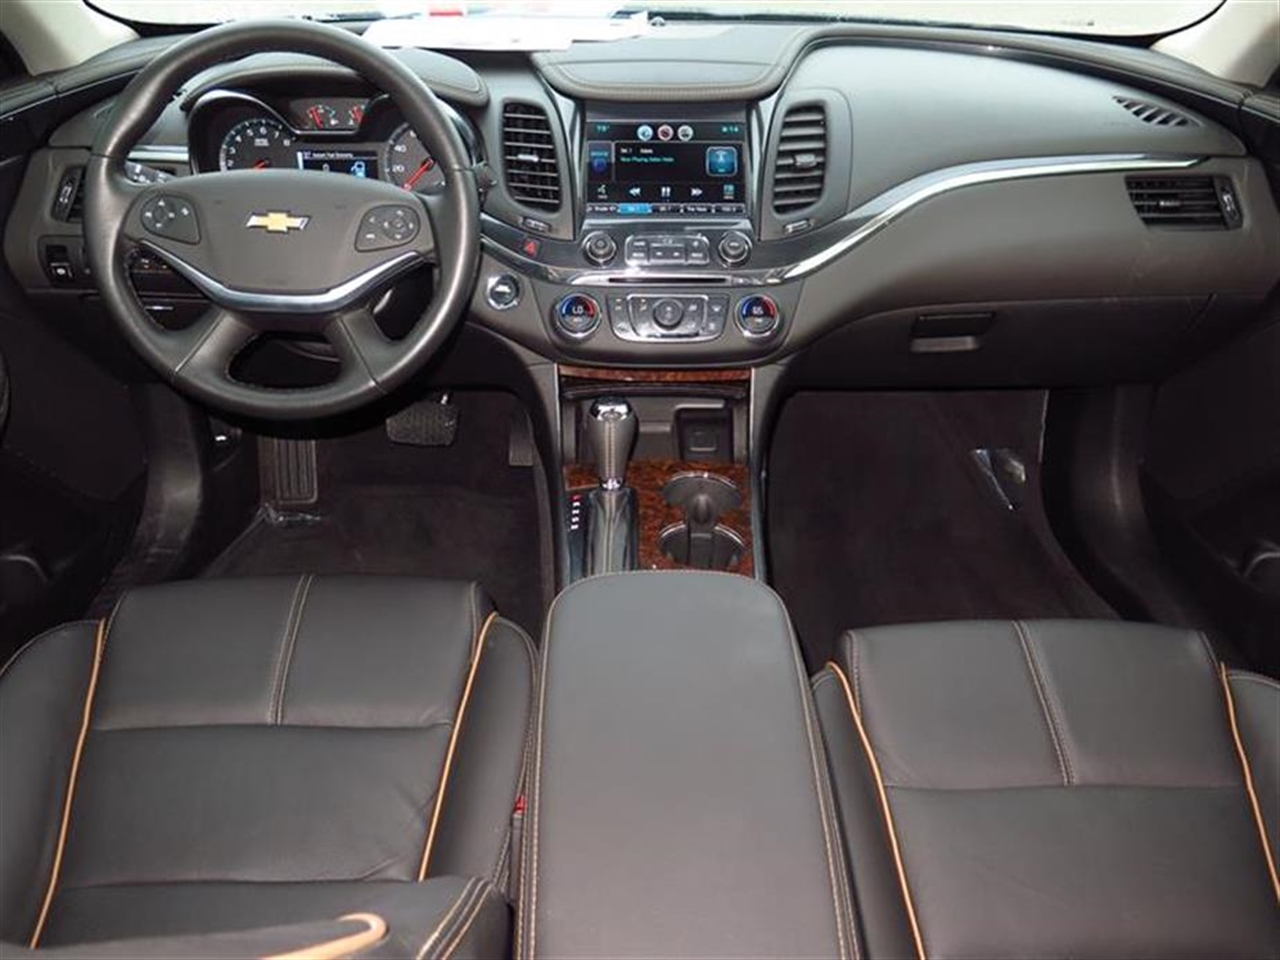 2015 CHEVROLET IMPALA 4dr Sdn LTZ w2LZ 24190 miles Air conditioning dual-zone automatic climate